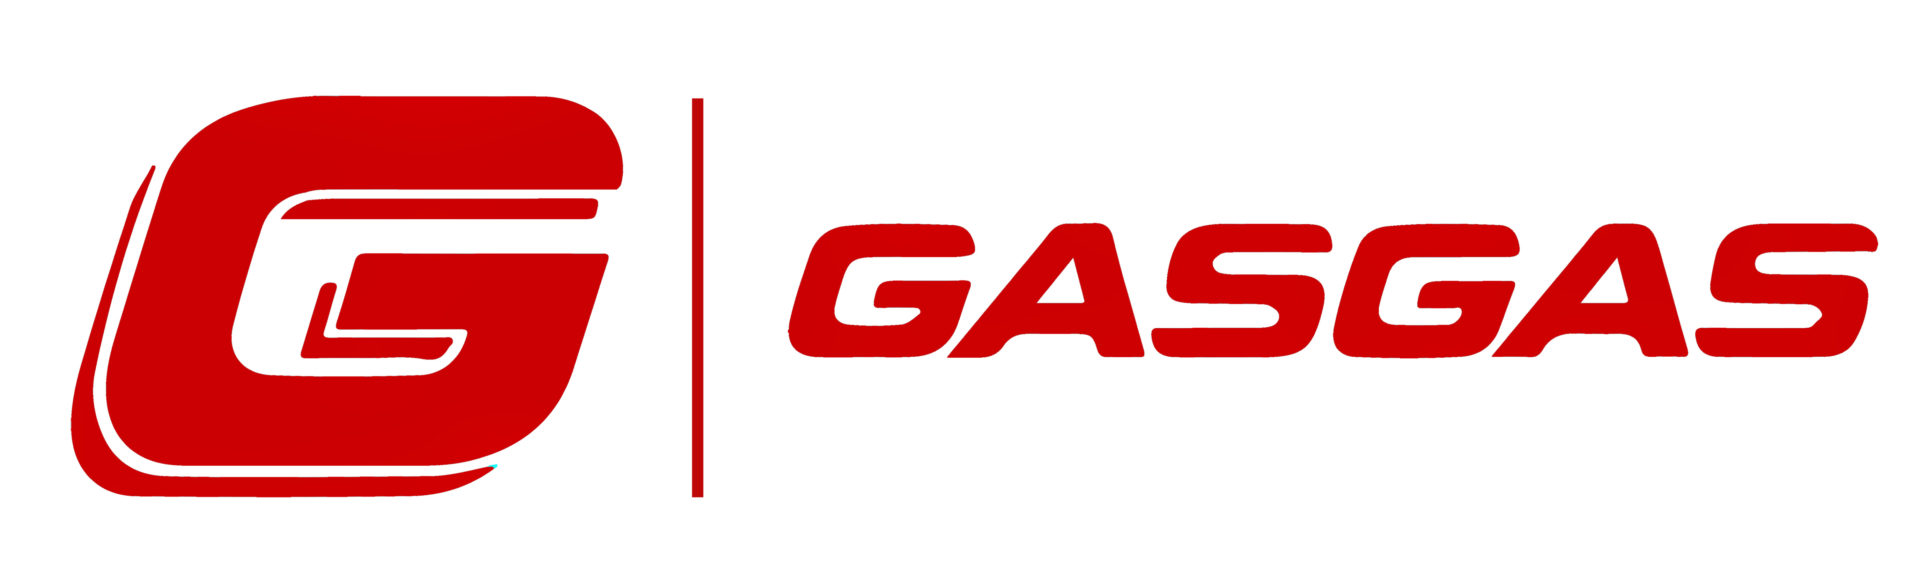 Gas Gas logo motorcycles